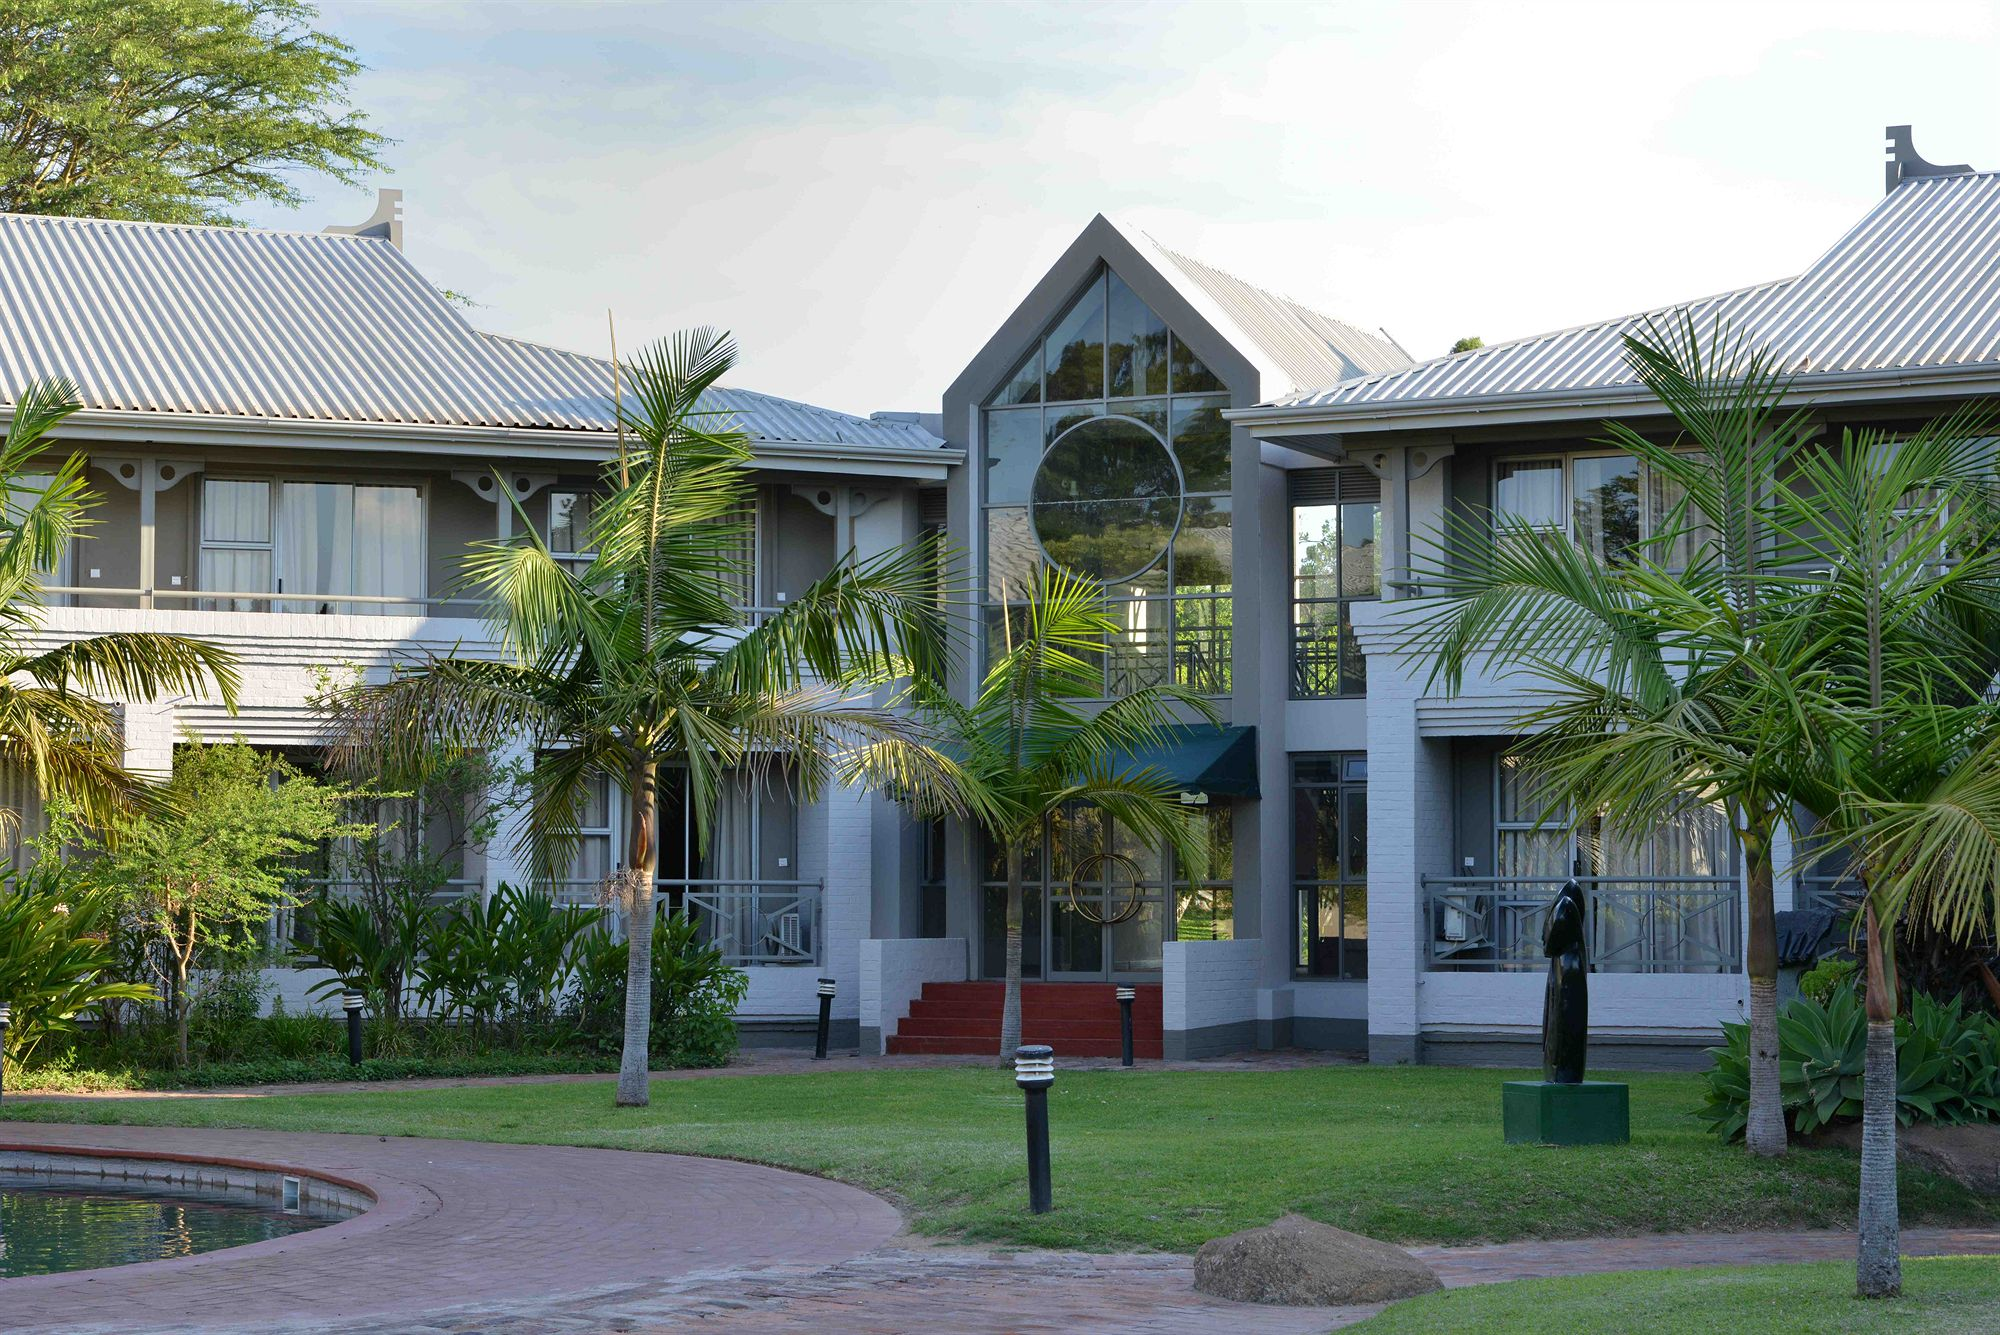 Top Features of Hotels in Harare